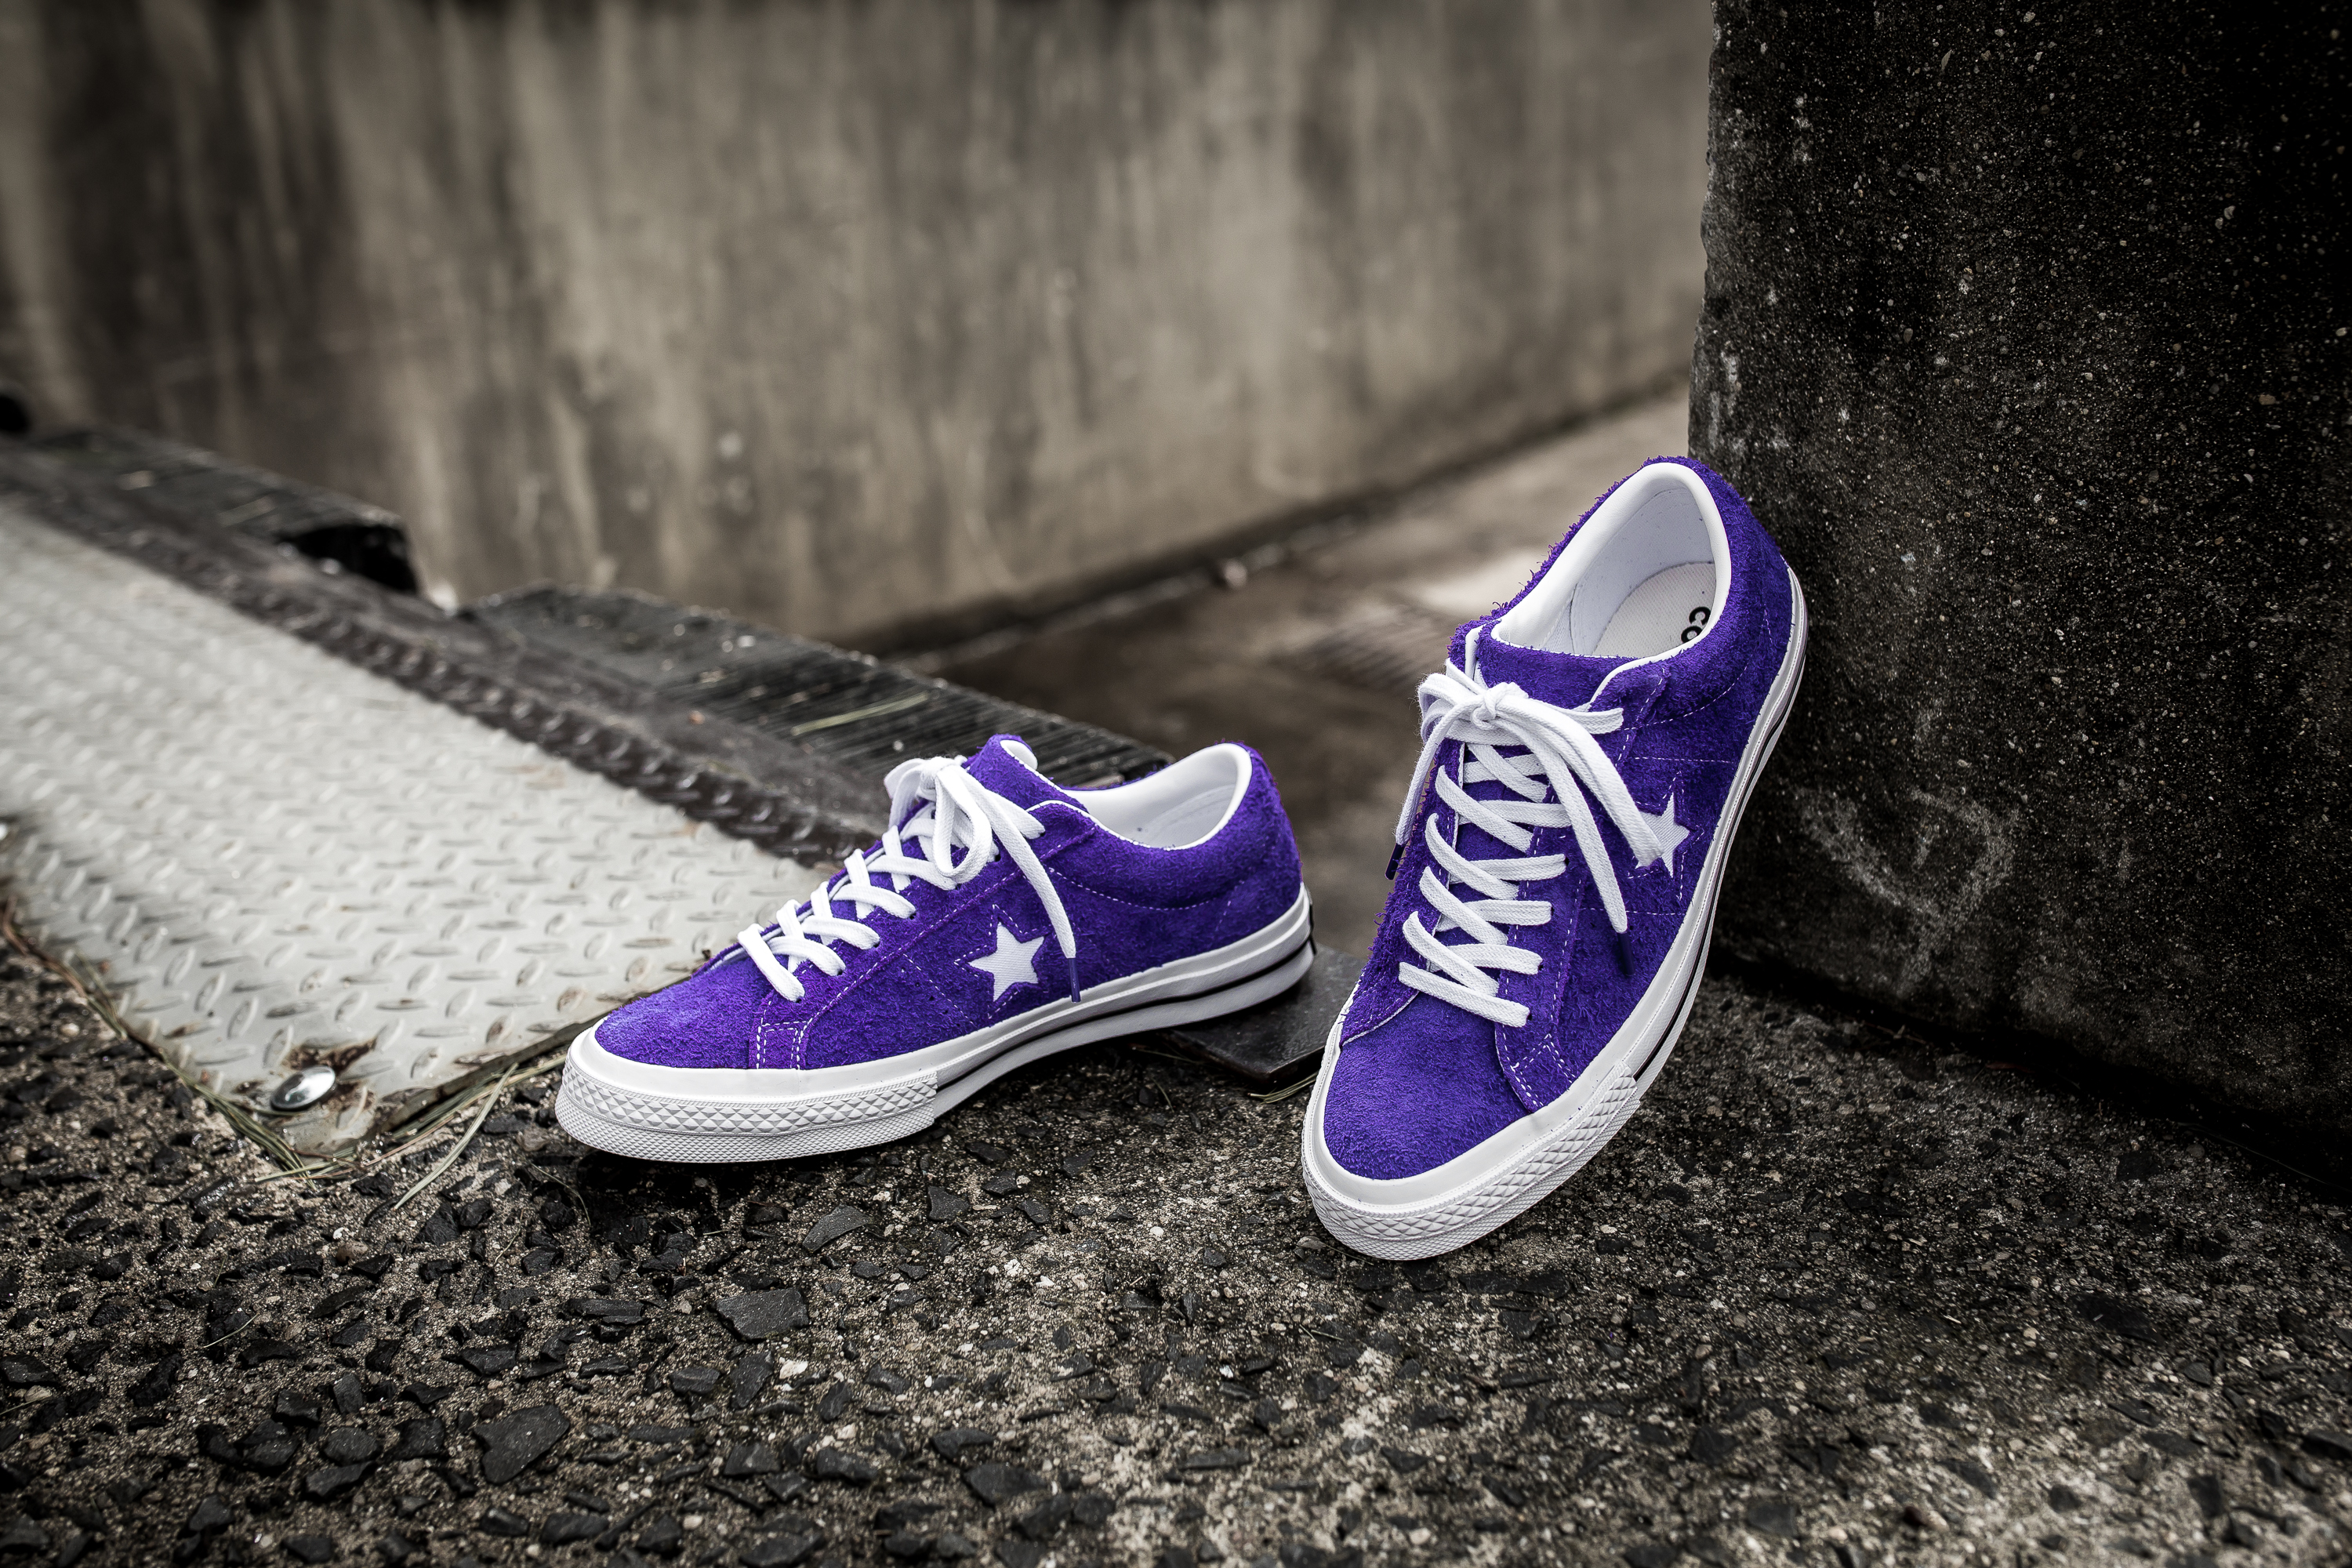 c3f8d36be79 ... official converse one star court purple c0258 20db7